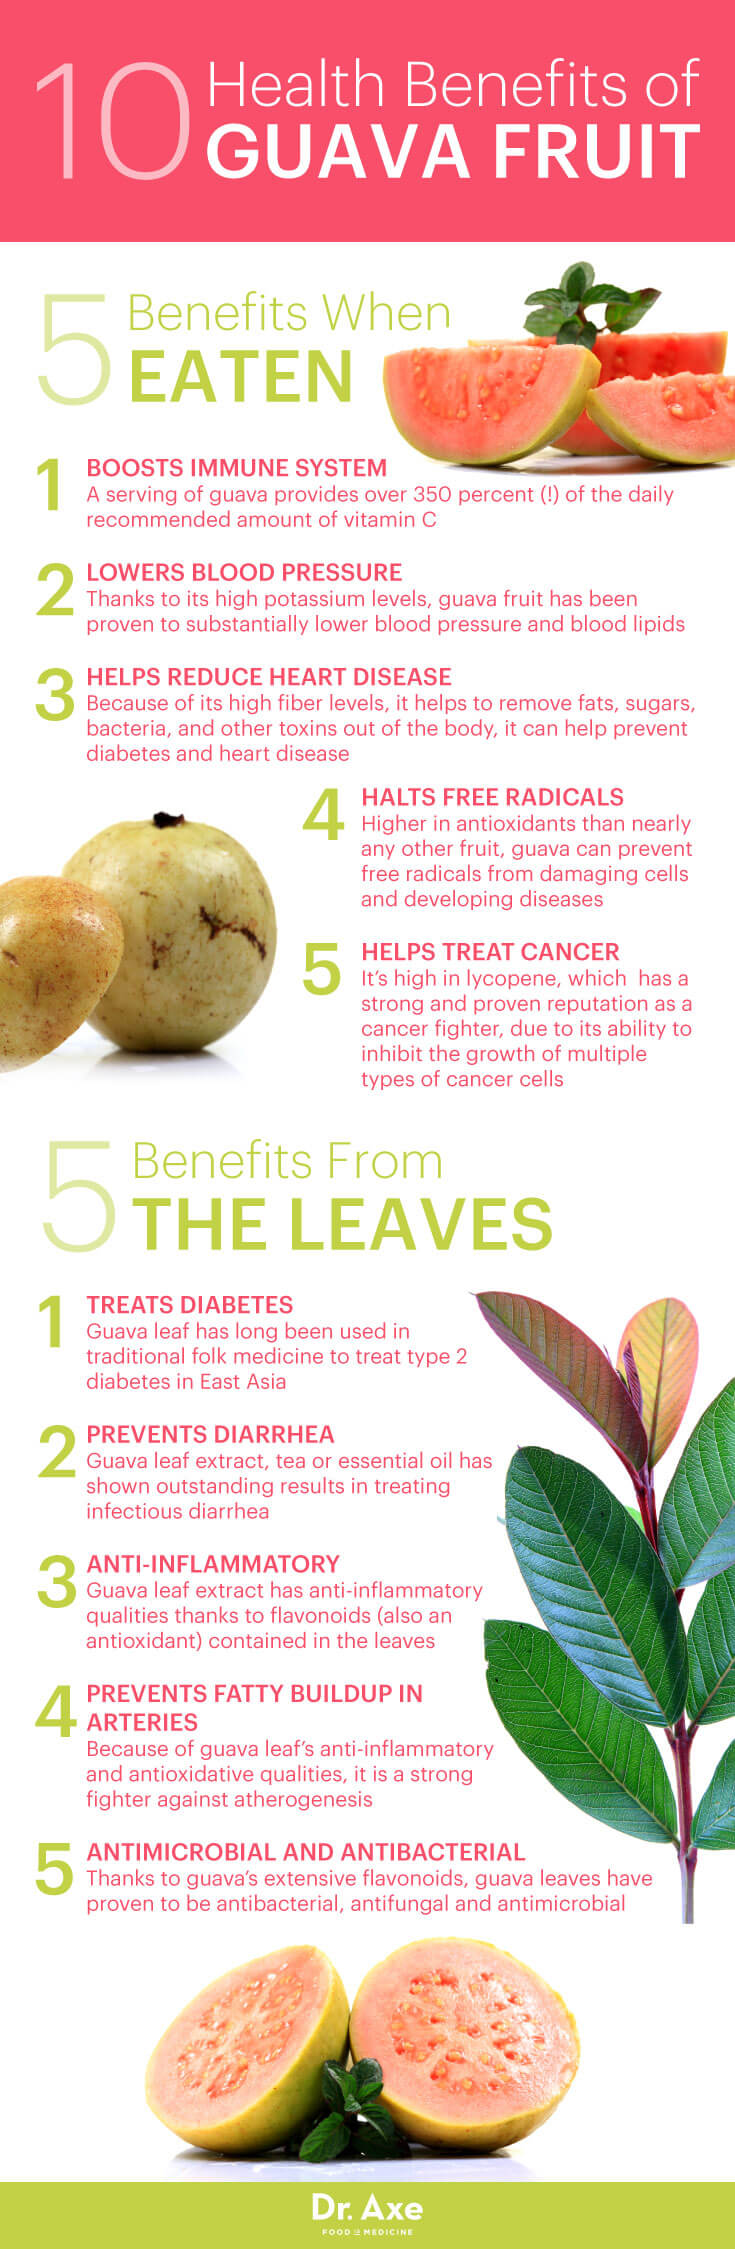 Guava benefits - Dr. Axe